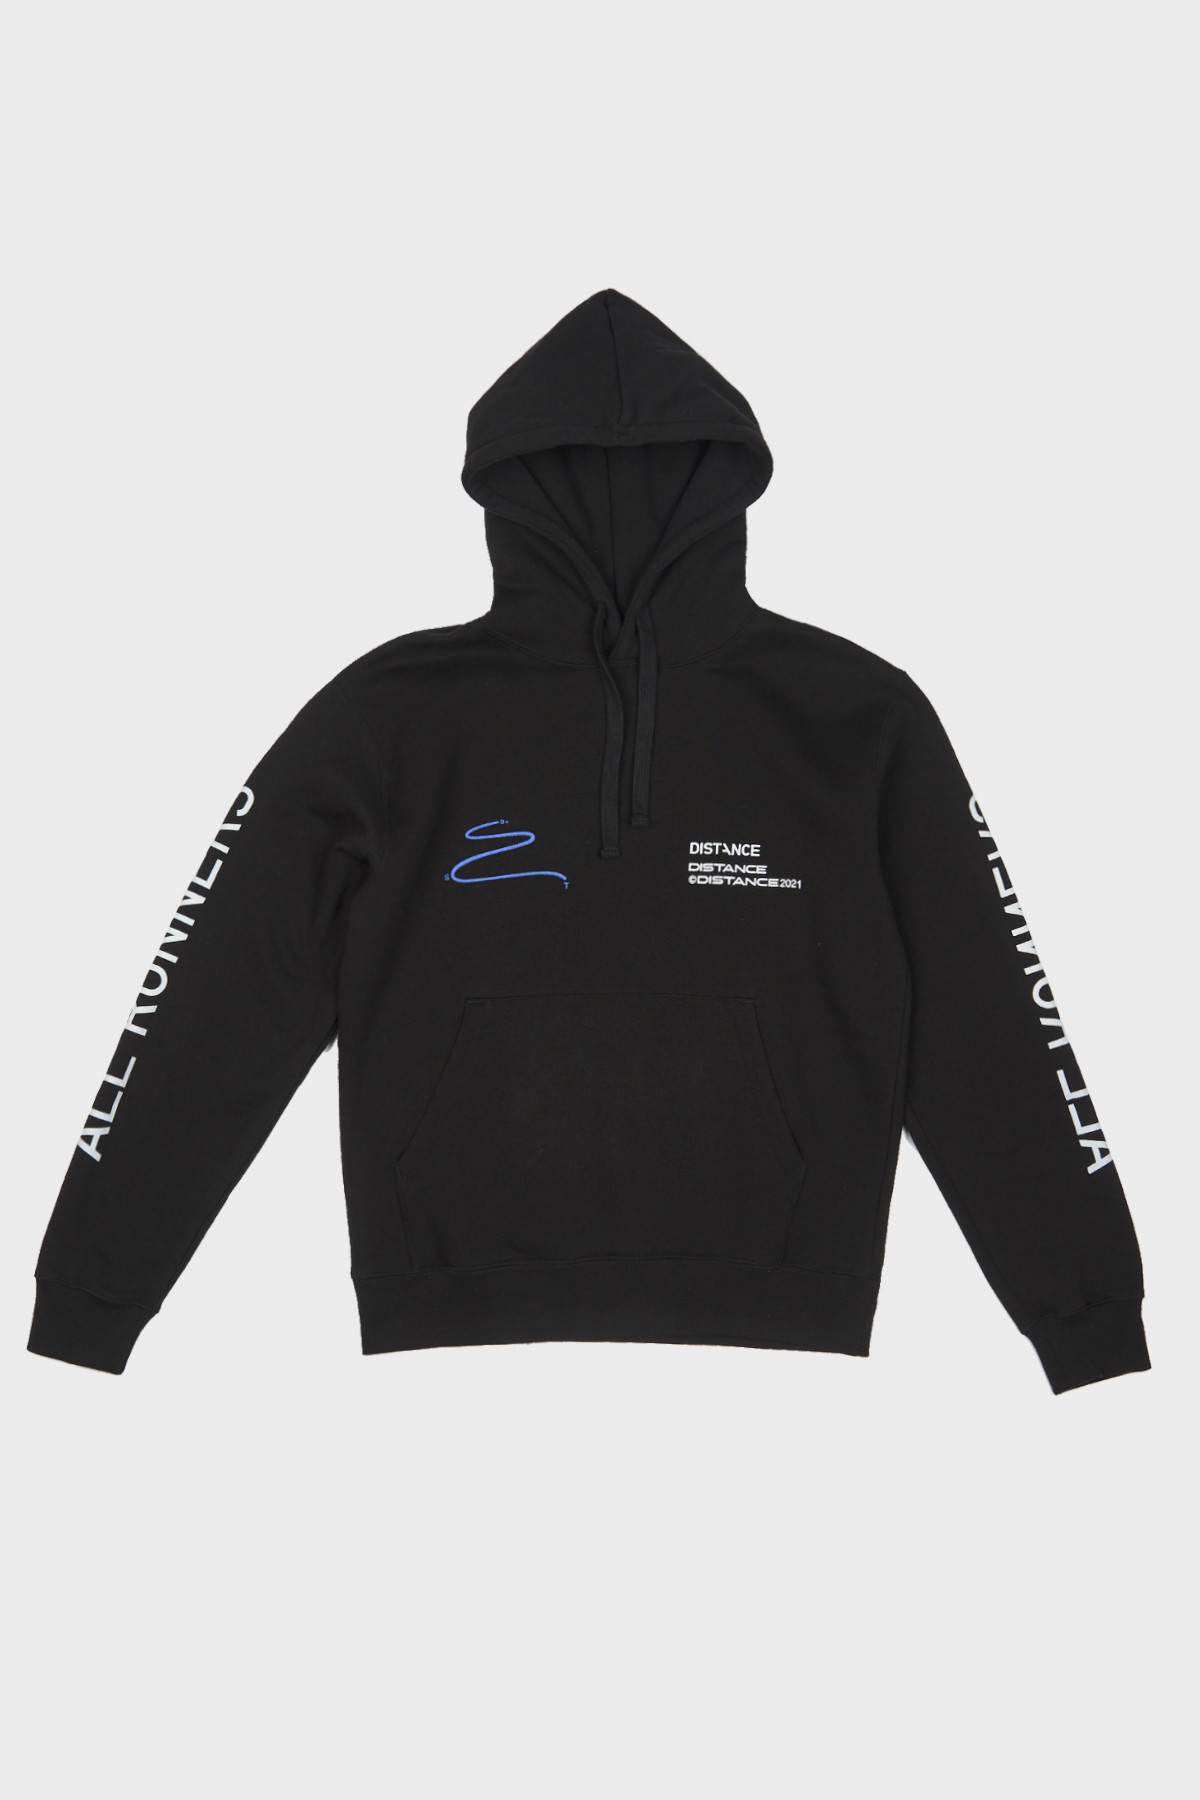 Distance - Classic Squiggle Hoodie - Black